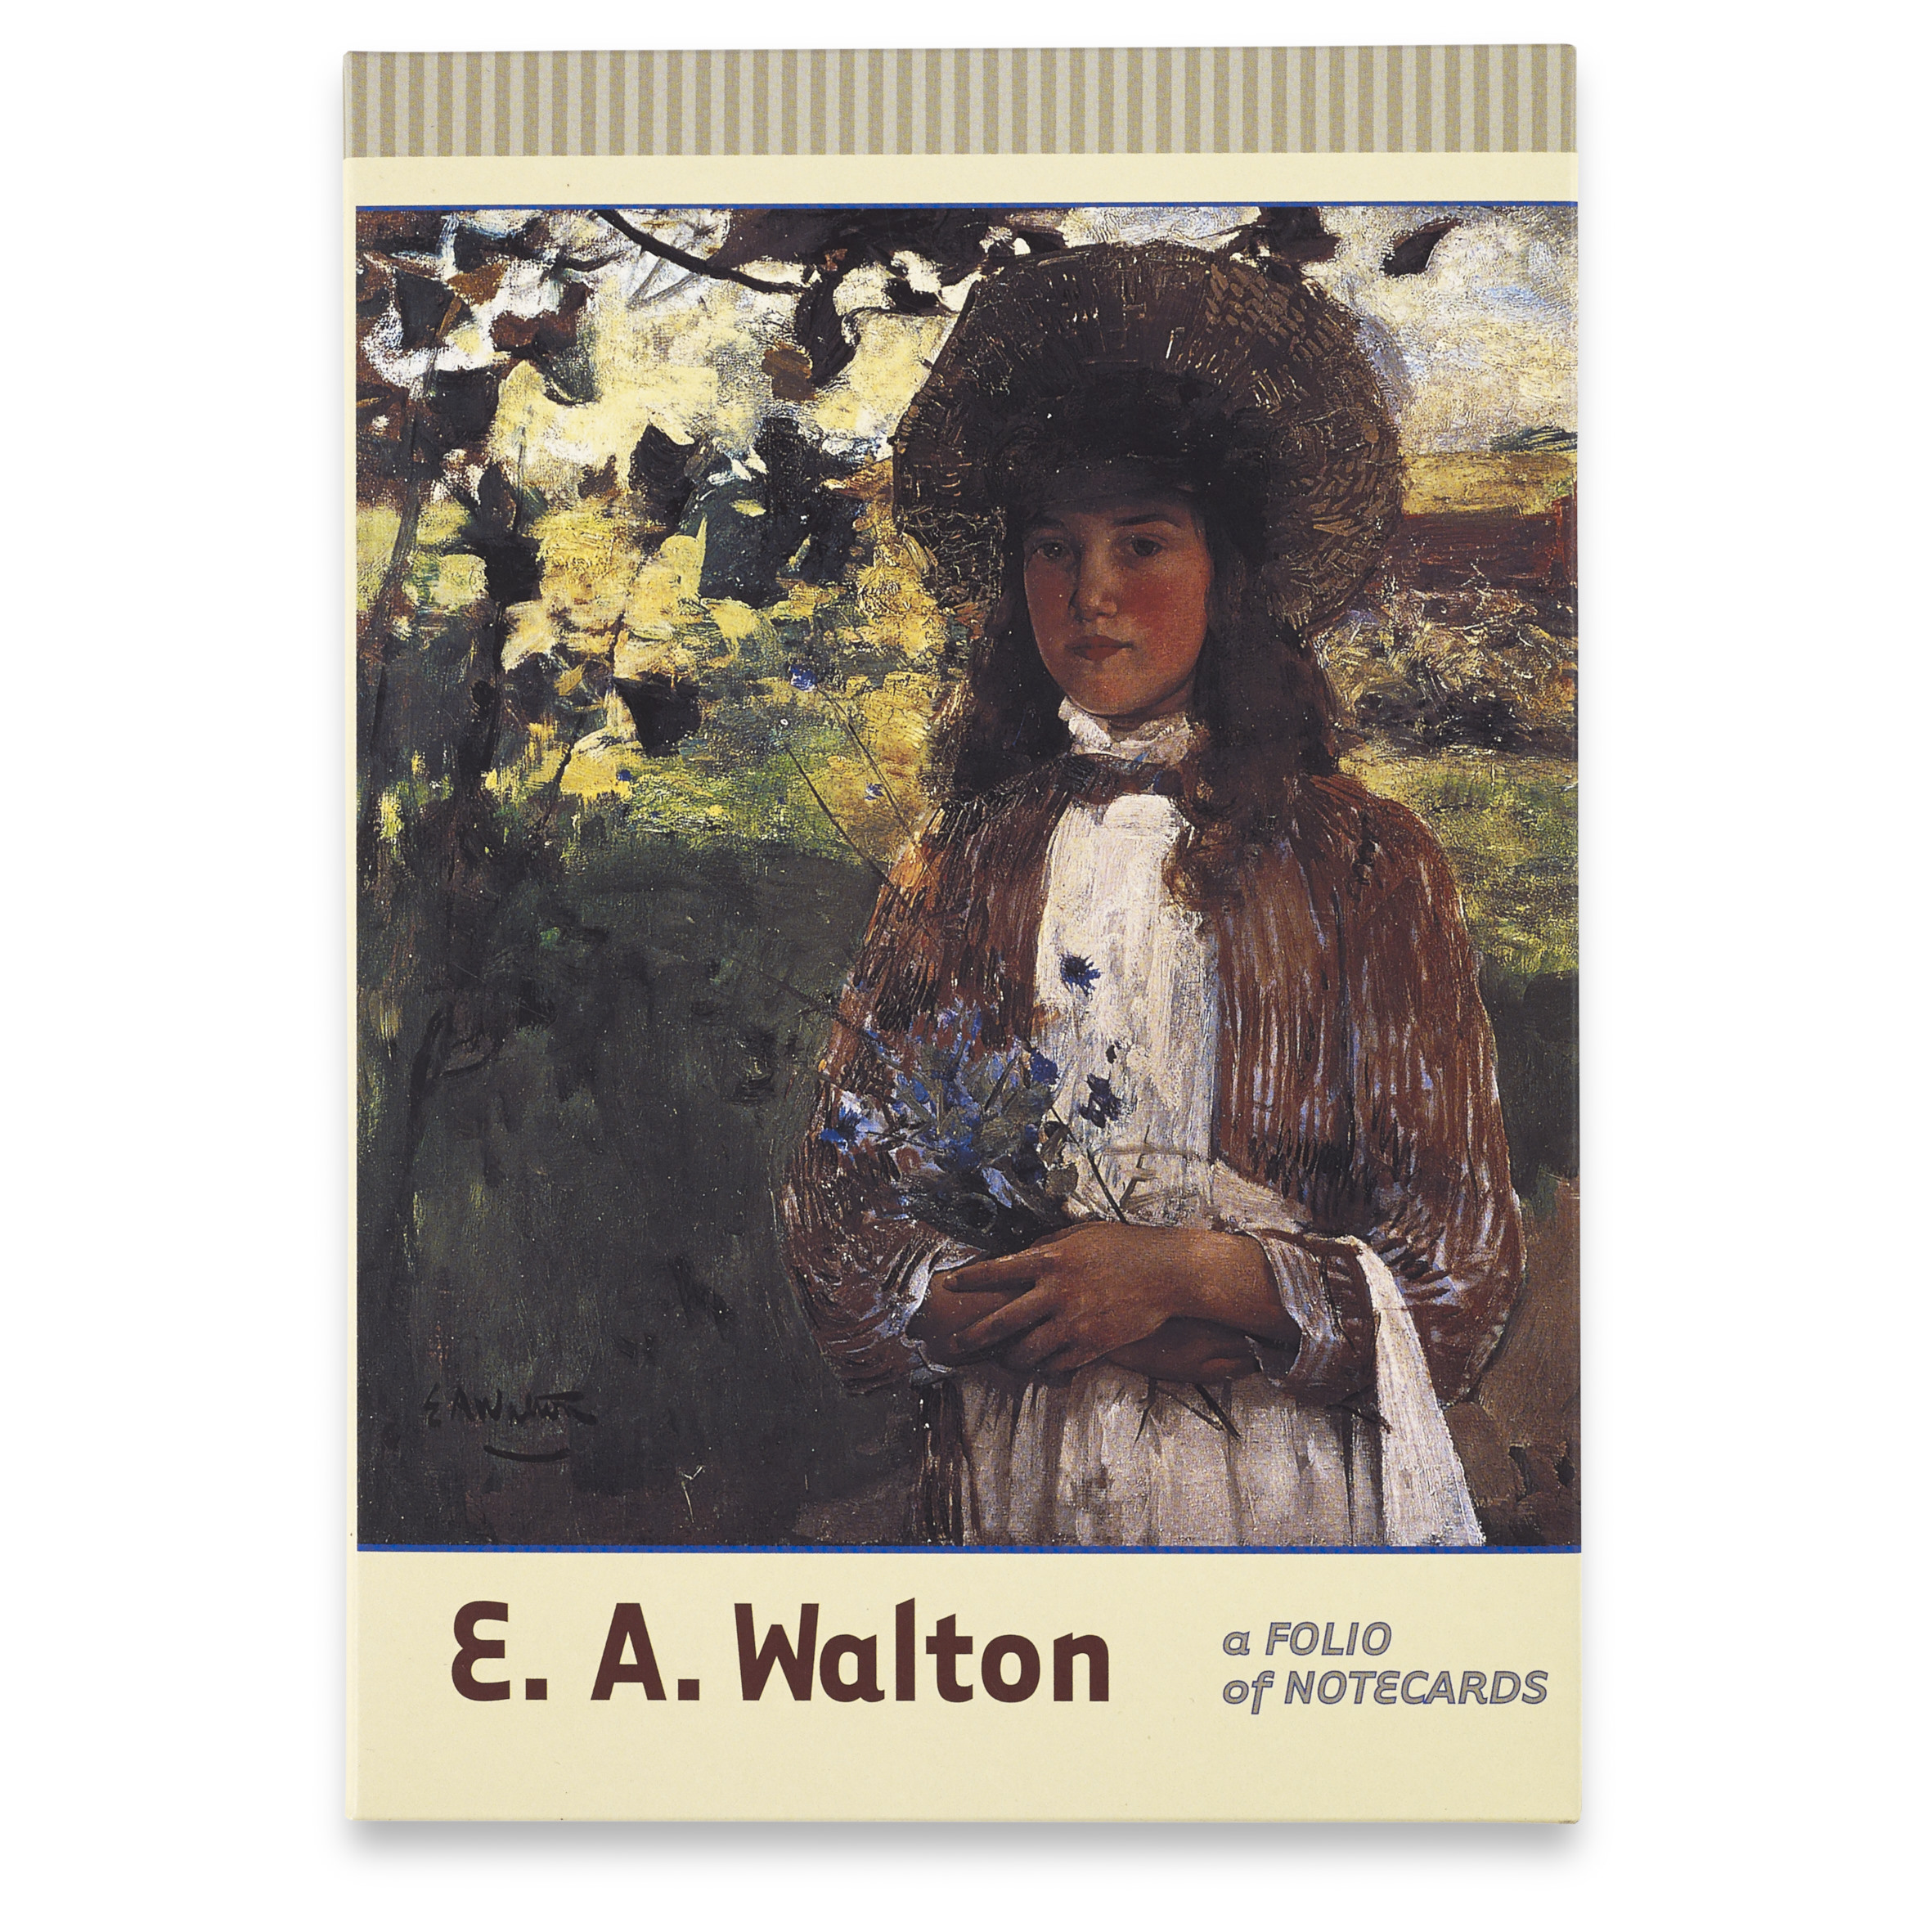 Edward Arthur Walton Notecard Set (10 cards)